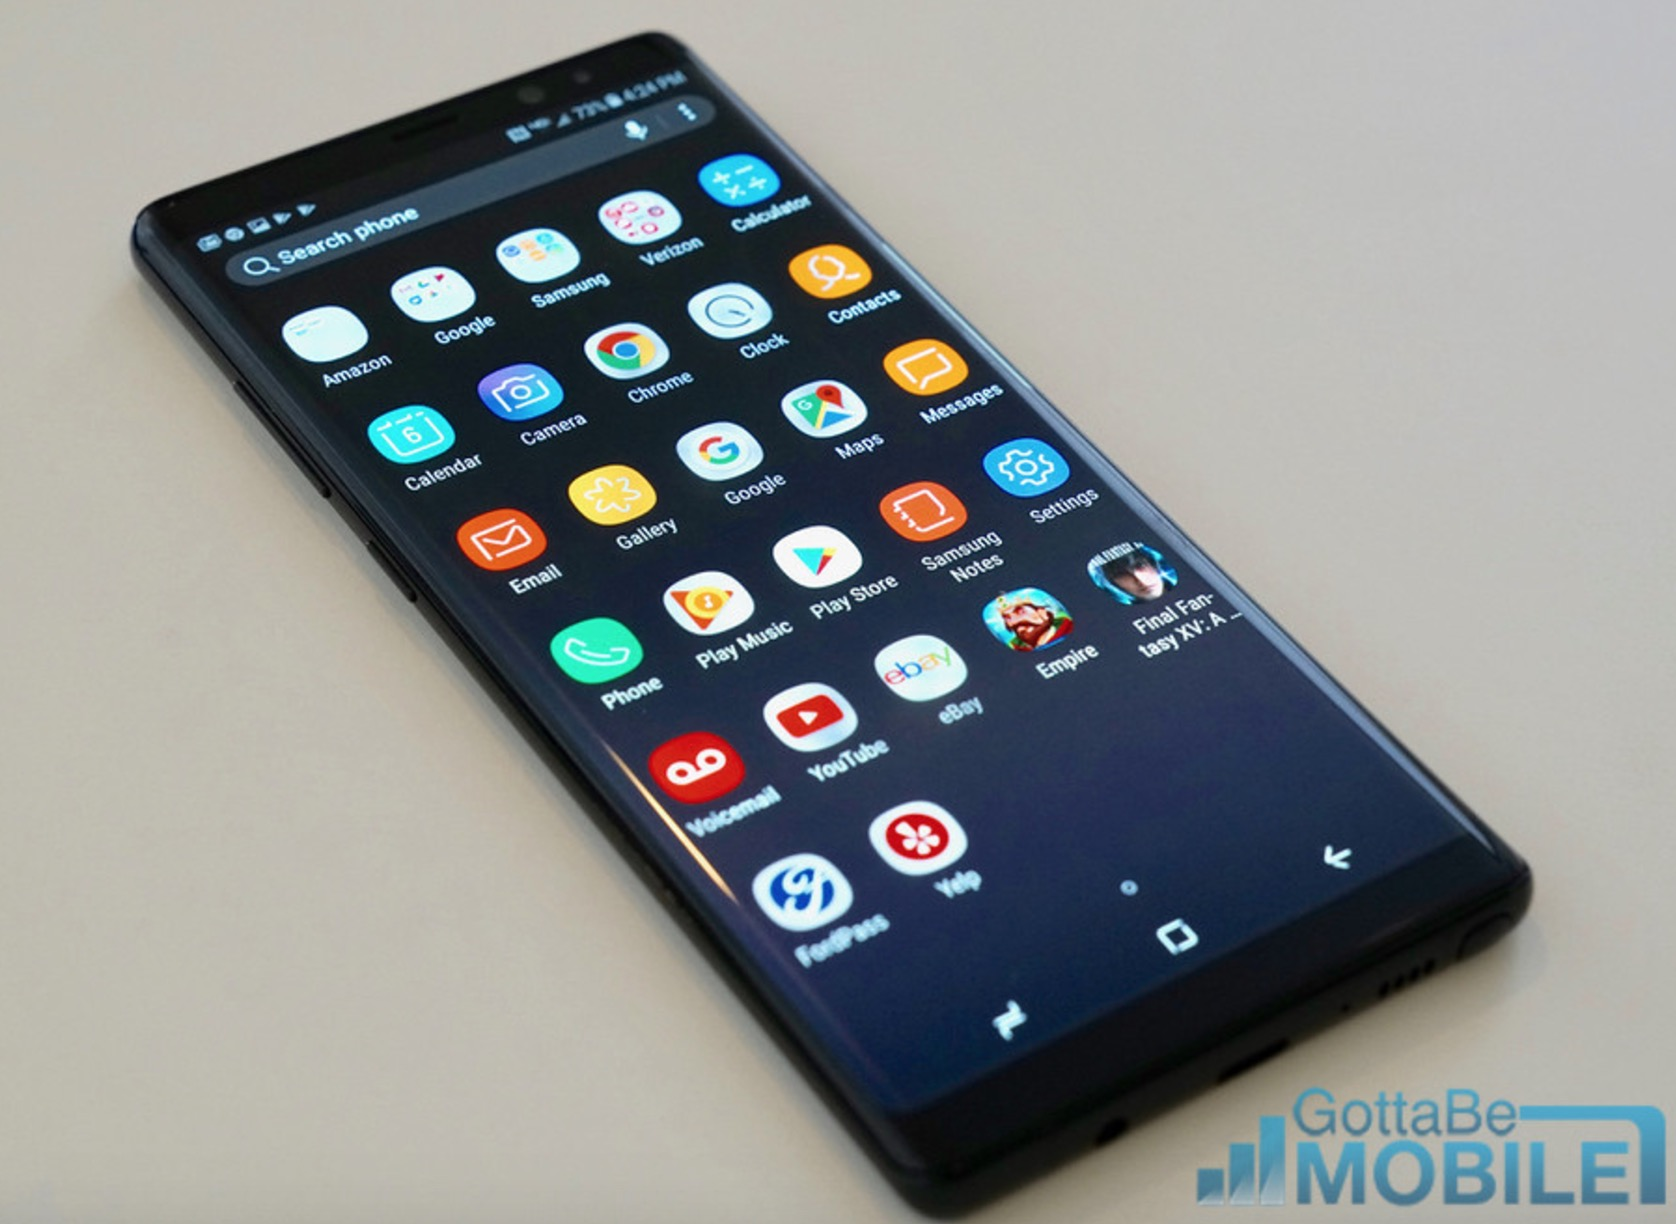 Steps to recover deleted text messages from Samsung Galaxy Note 4